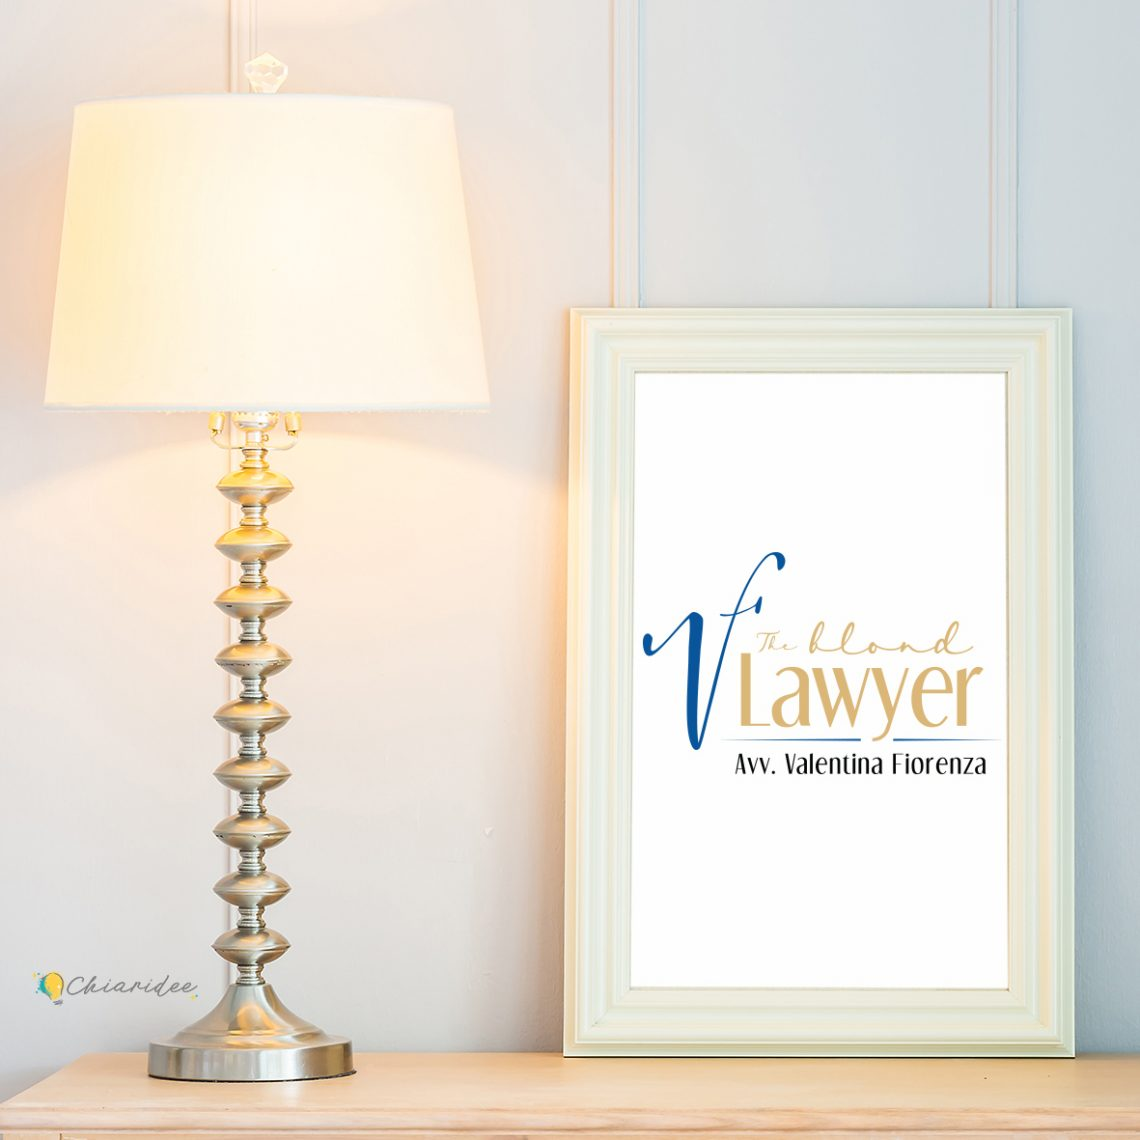 The blond lawyer logo